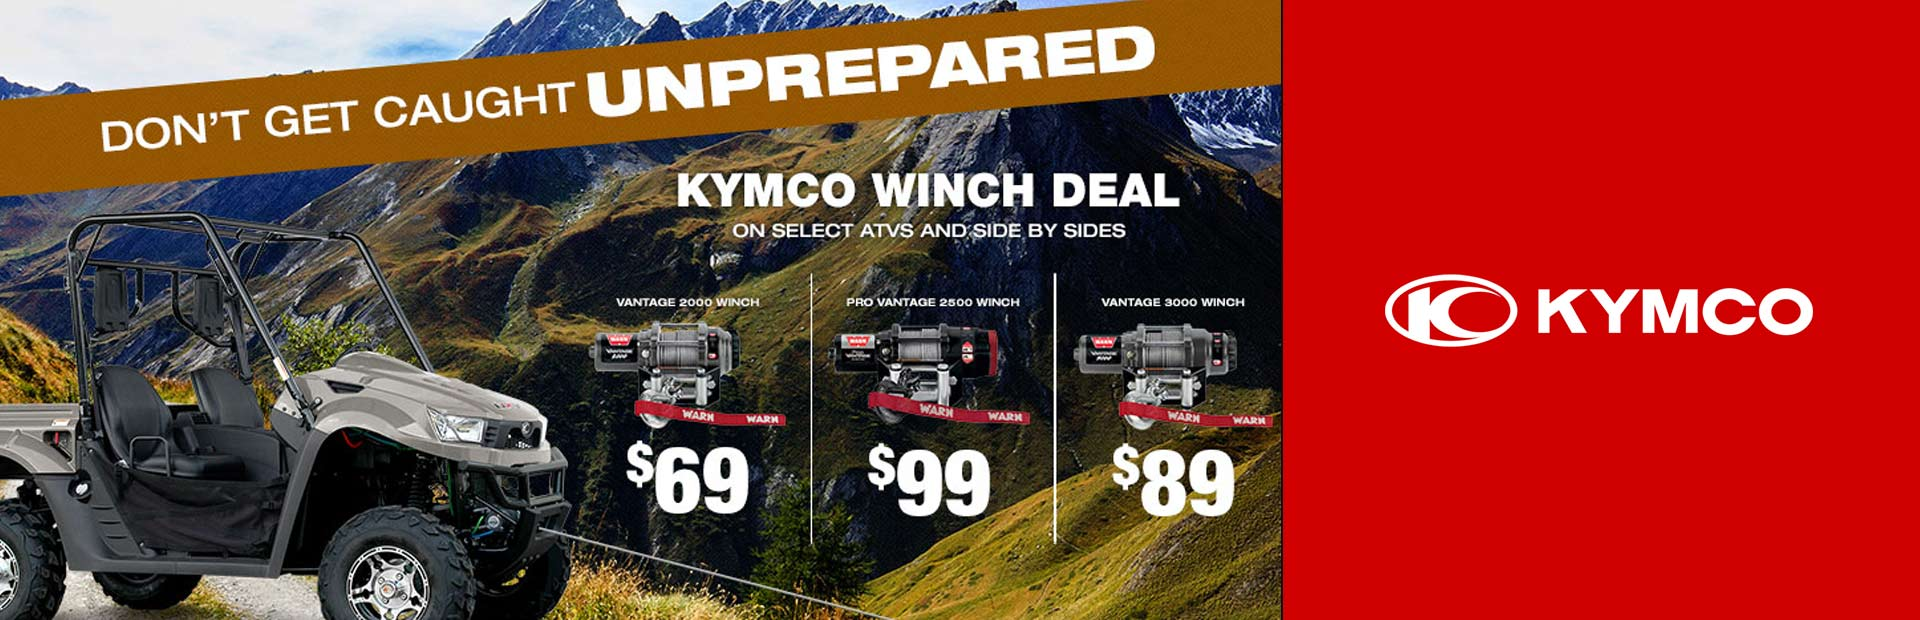 KYMCO: Winch Deal